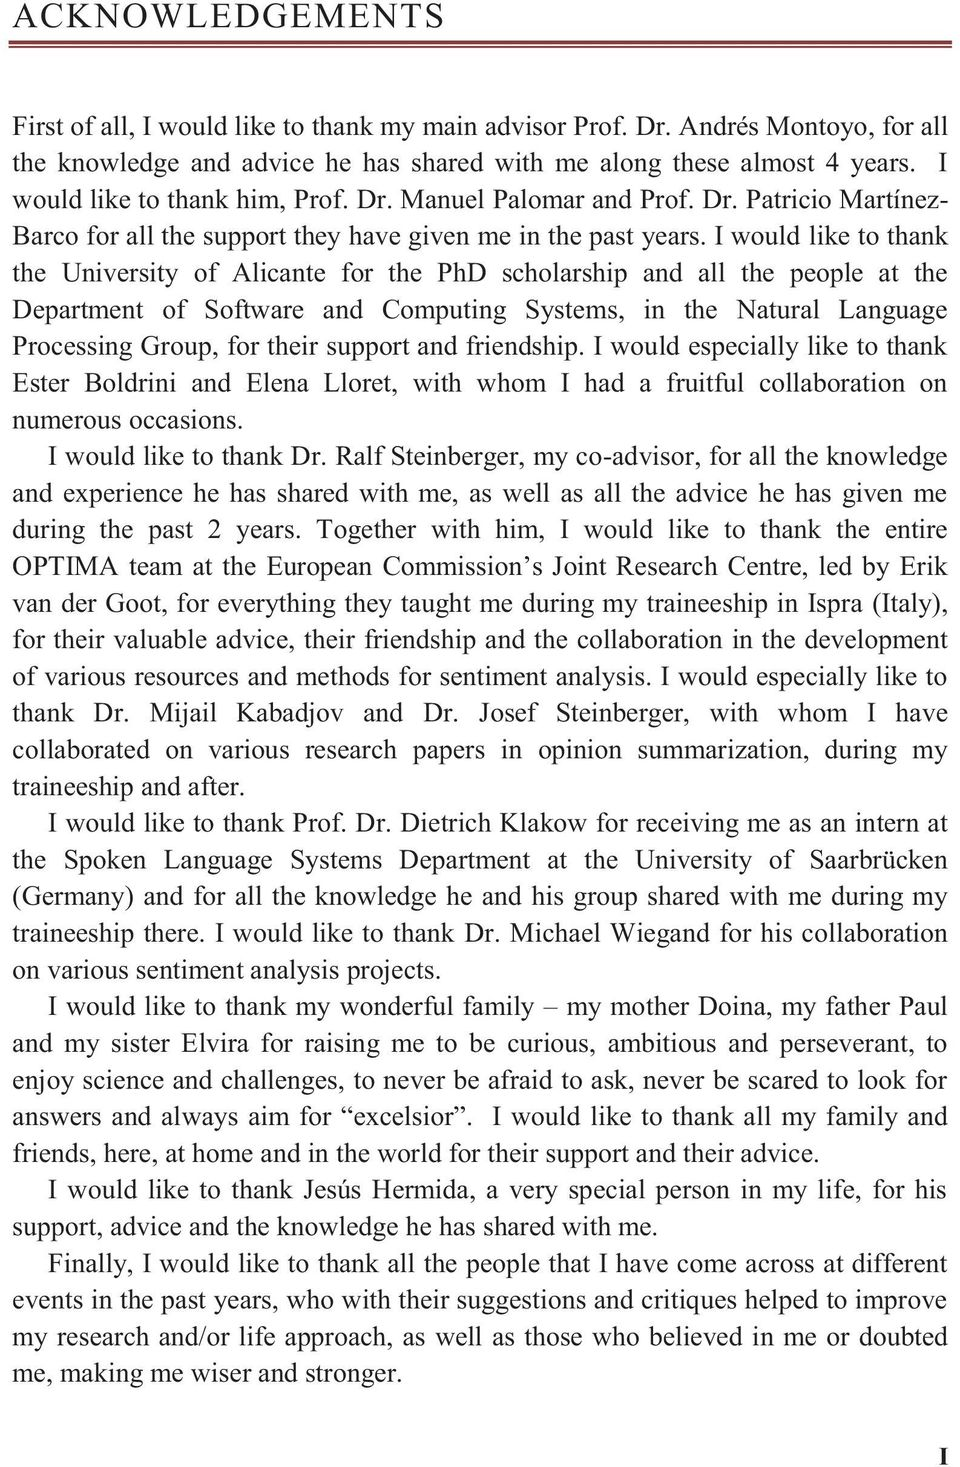 I would like to thank the University of Alicante for the PhD scholarship and all the people at the Department of Software and Computing Systems, in the Natural Language Processing Group, for their